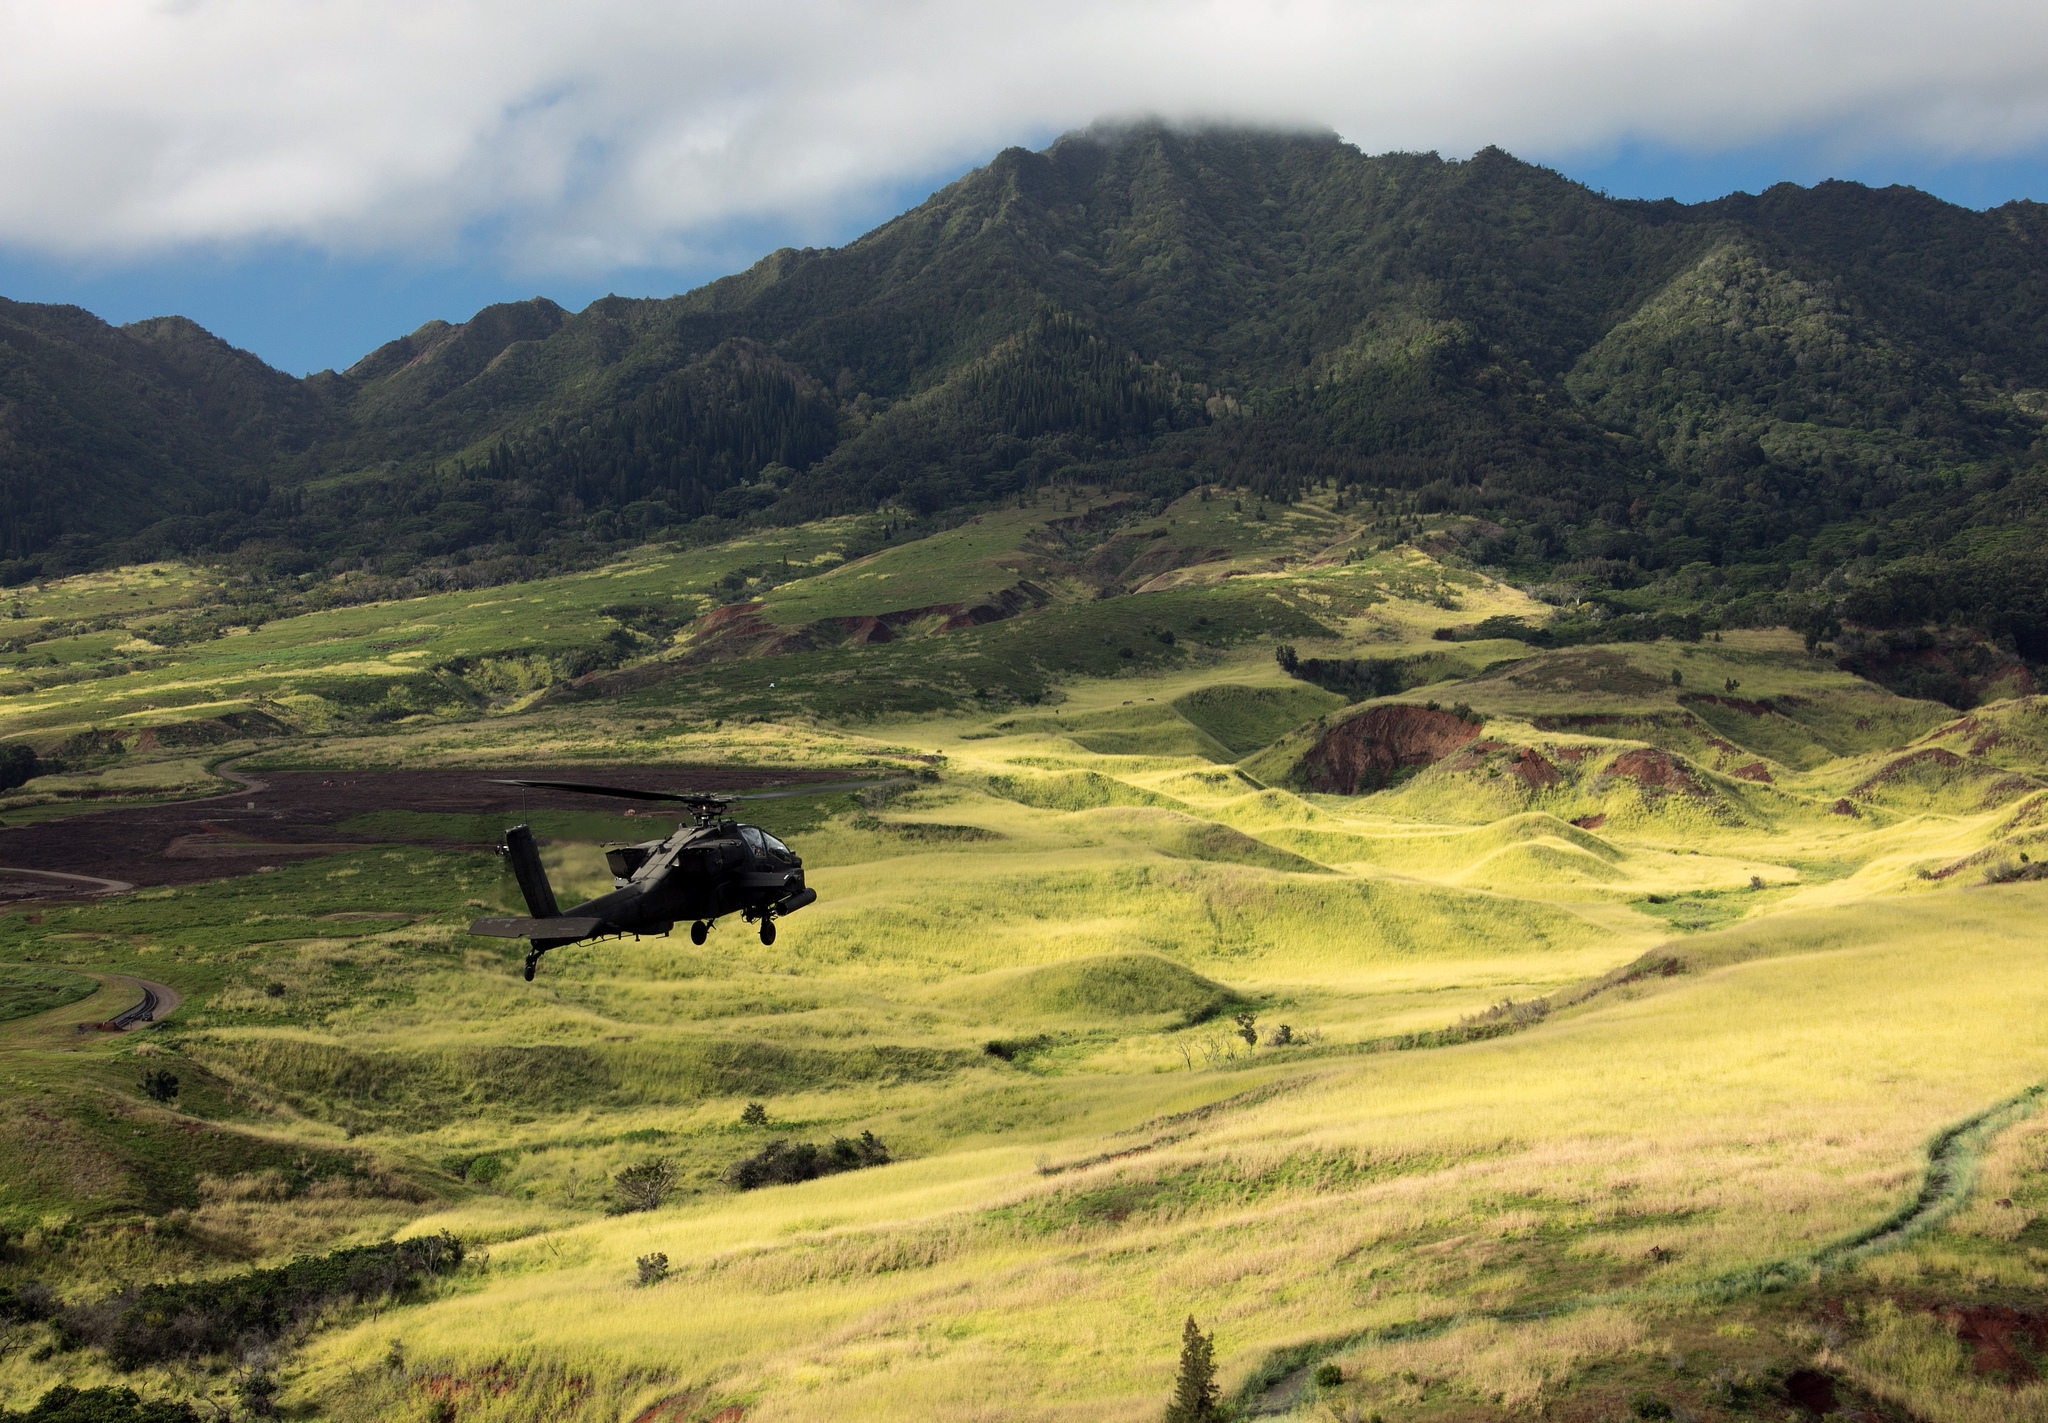 An Army AH-64D Apache helicopter flies in formation for the 25th Infantry Division Review over Schofield Barracks, Hawaii, Dec. 21, 2018. (Staff Sgt. Ian Morales/Army)